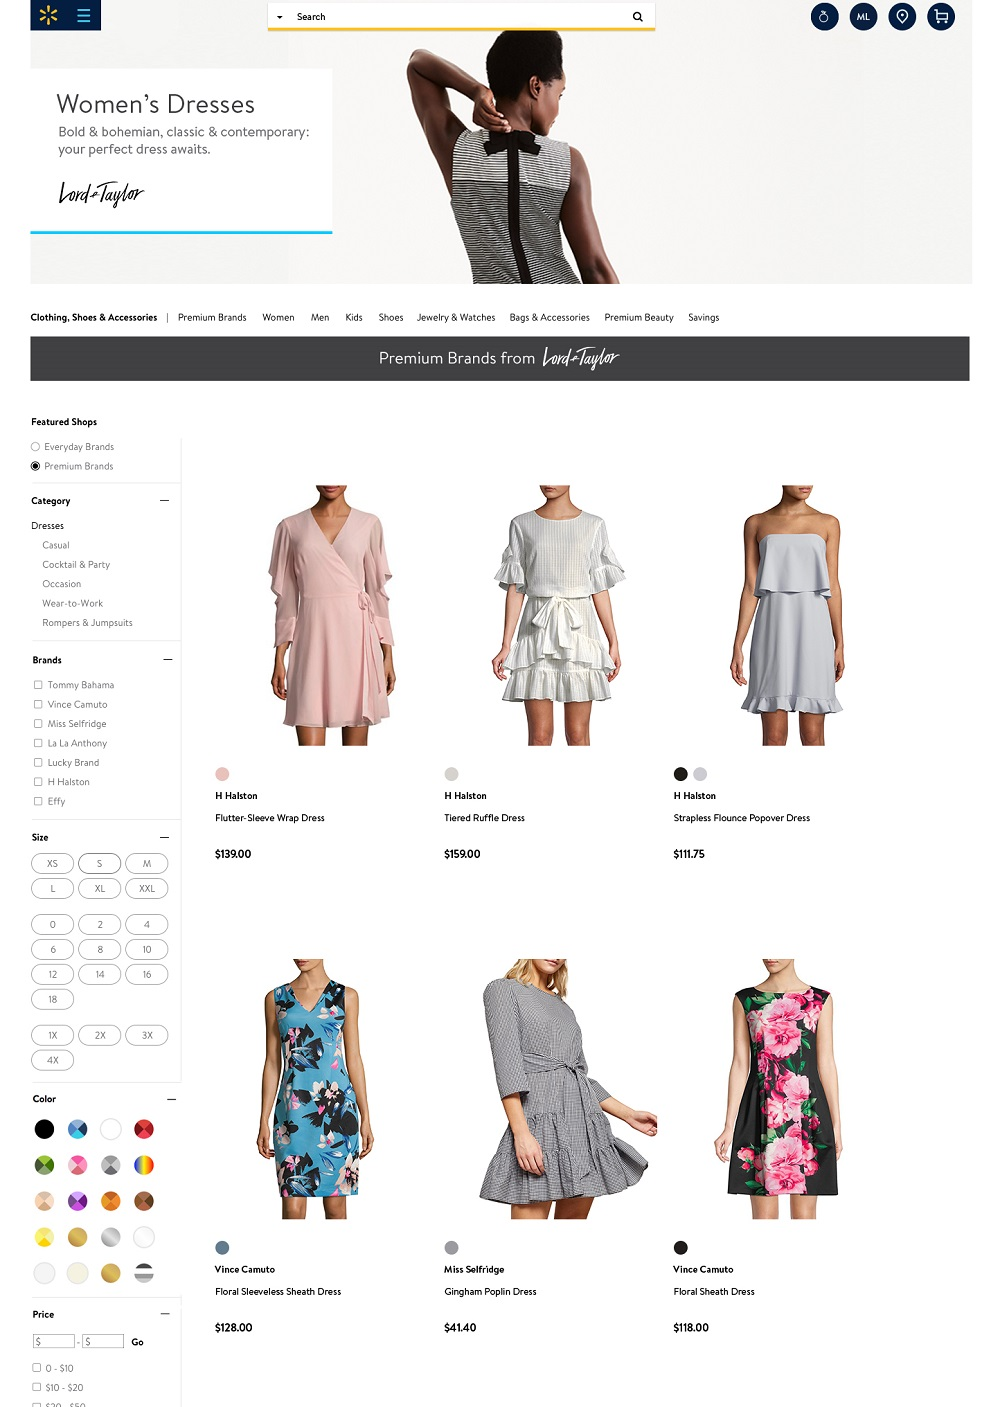 Lord & Taylor Set to Debut in Walmart.com\'s New Fashion Destination ...